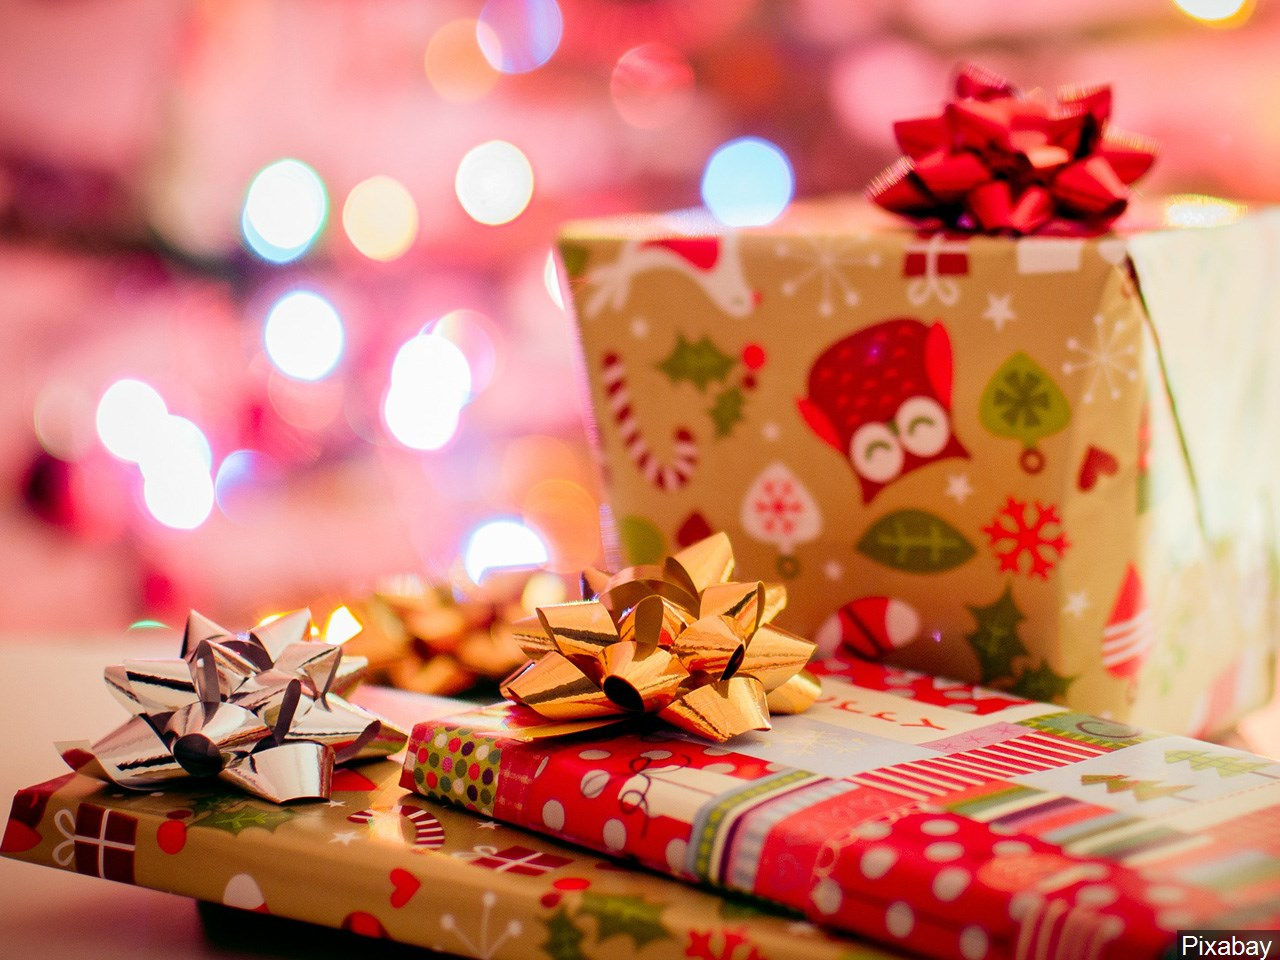 The Salvation Army Angel Tree program will celebrate 40 years of putting smiles on faces of needy children in the holiday season.